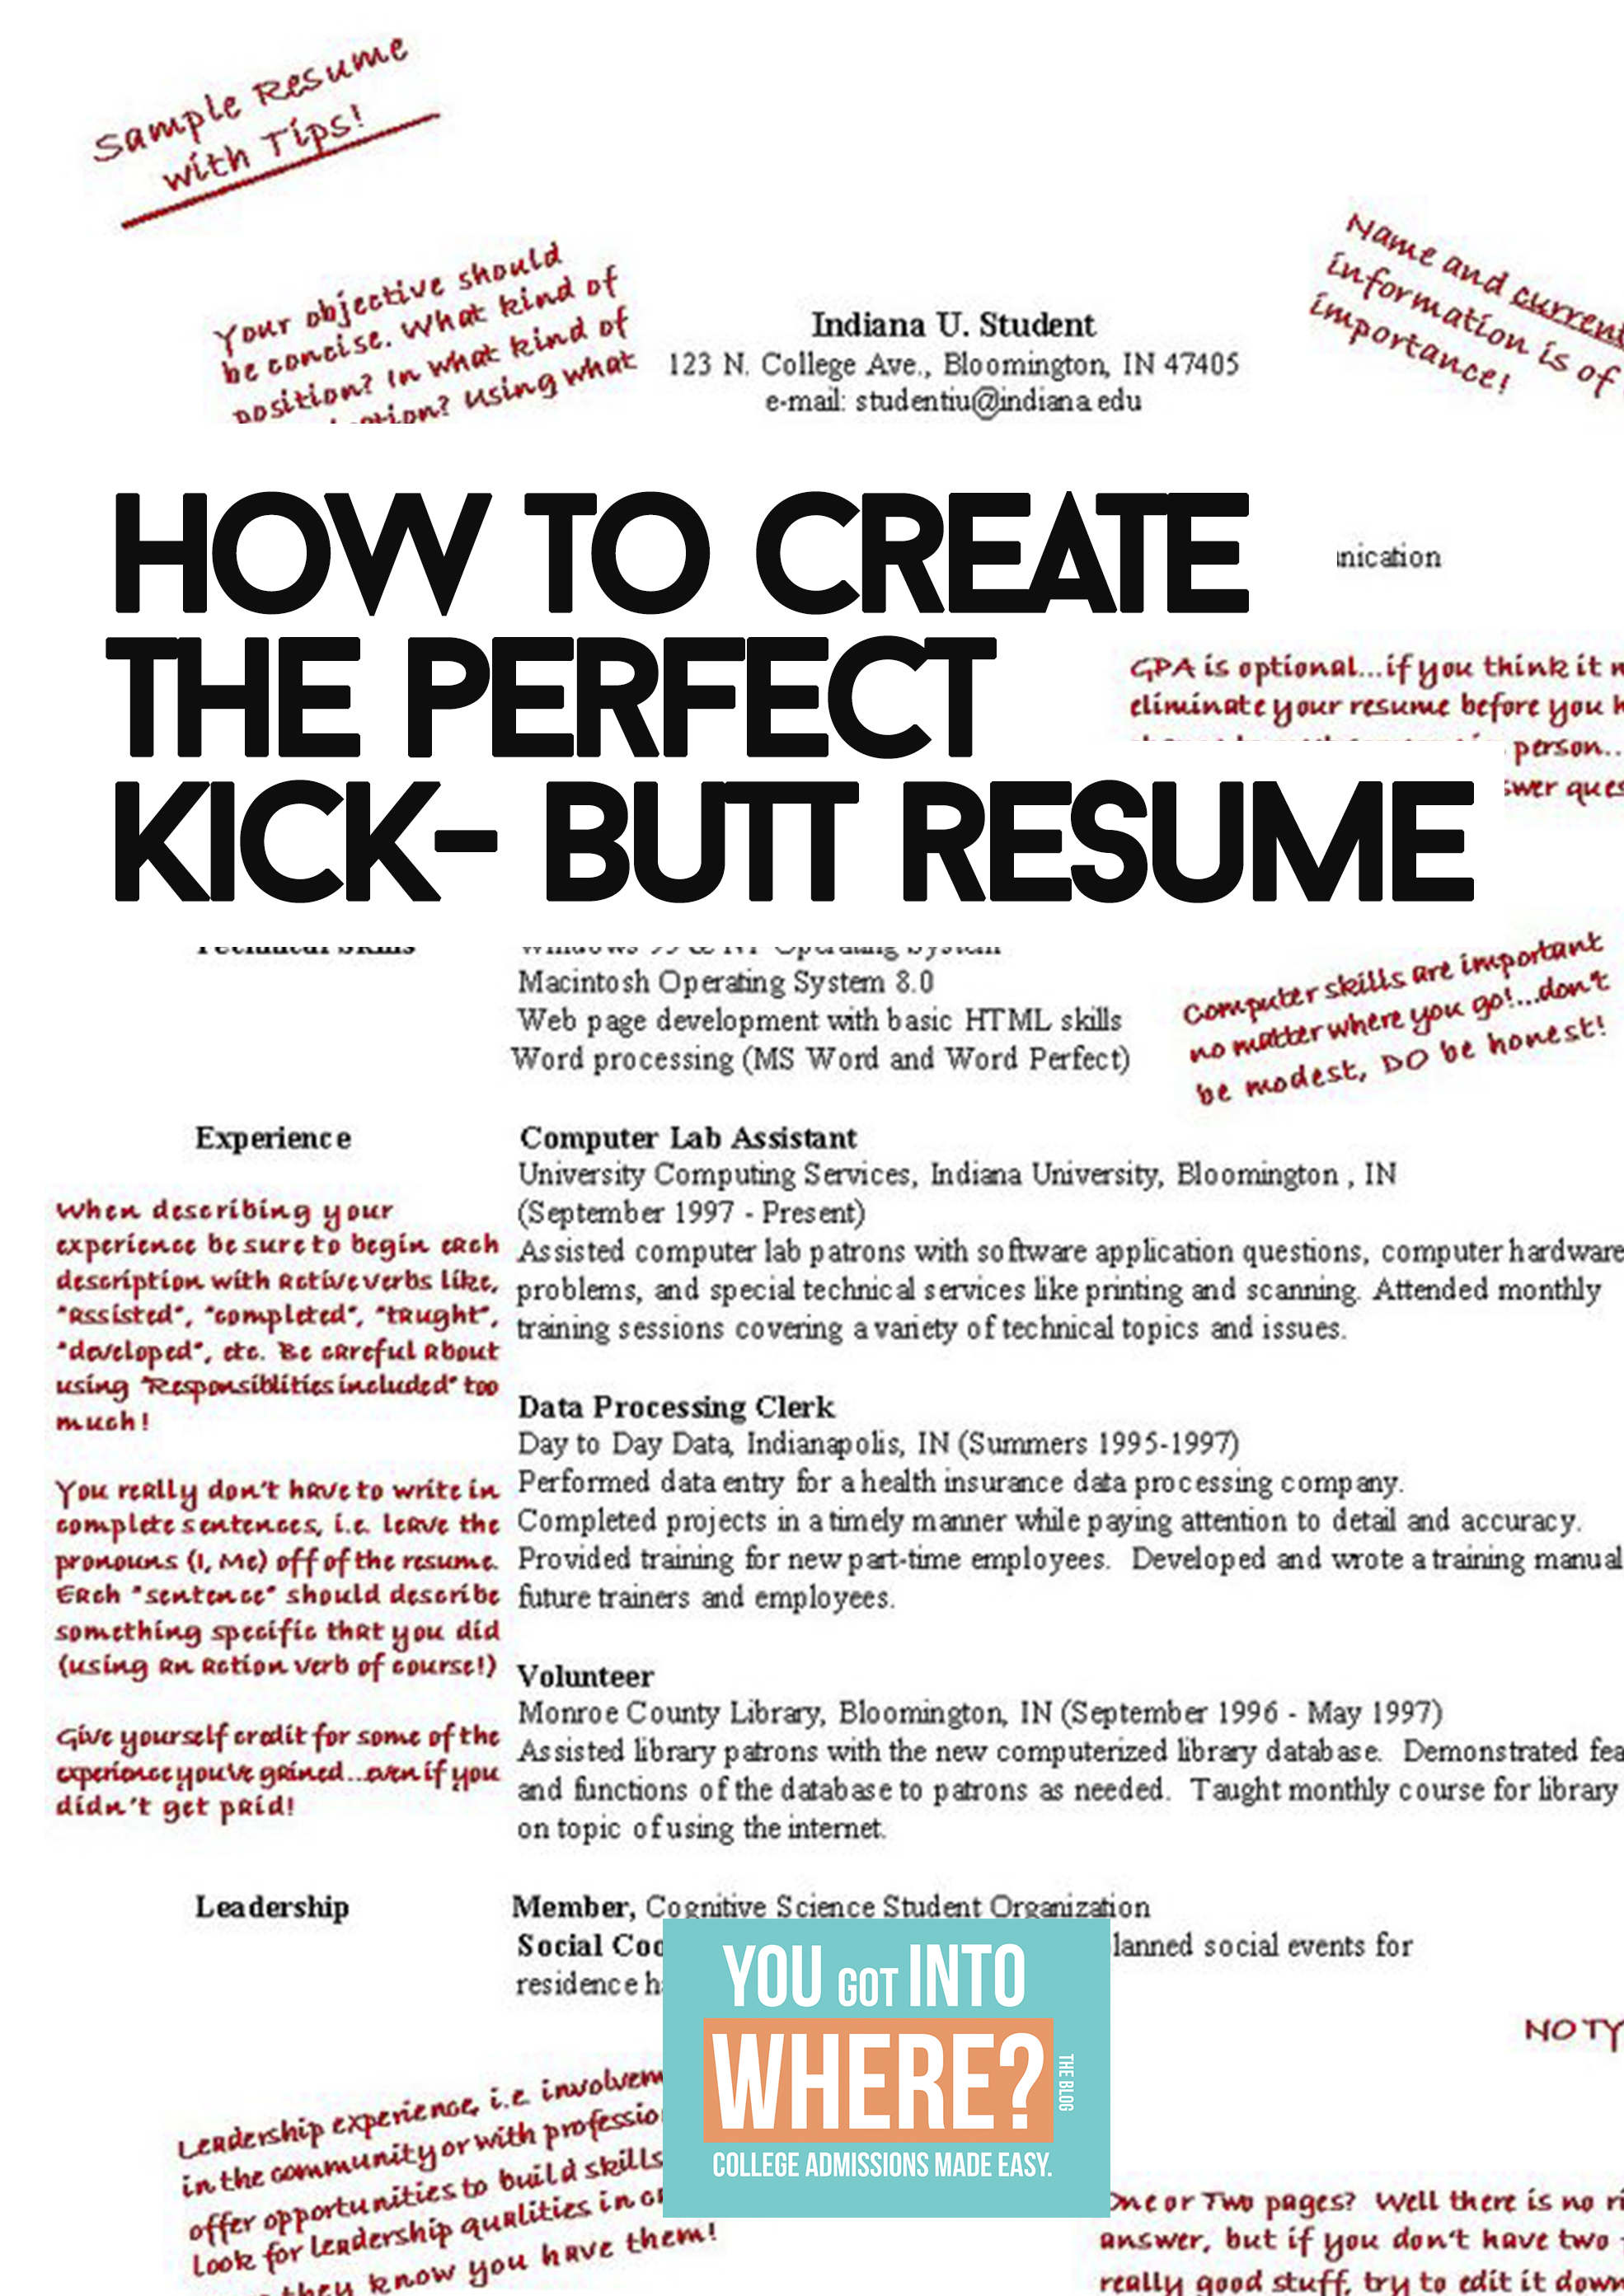 how-to-create-the-perfect-kick-butt-resume.png